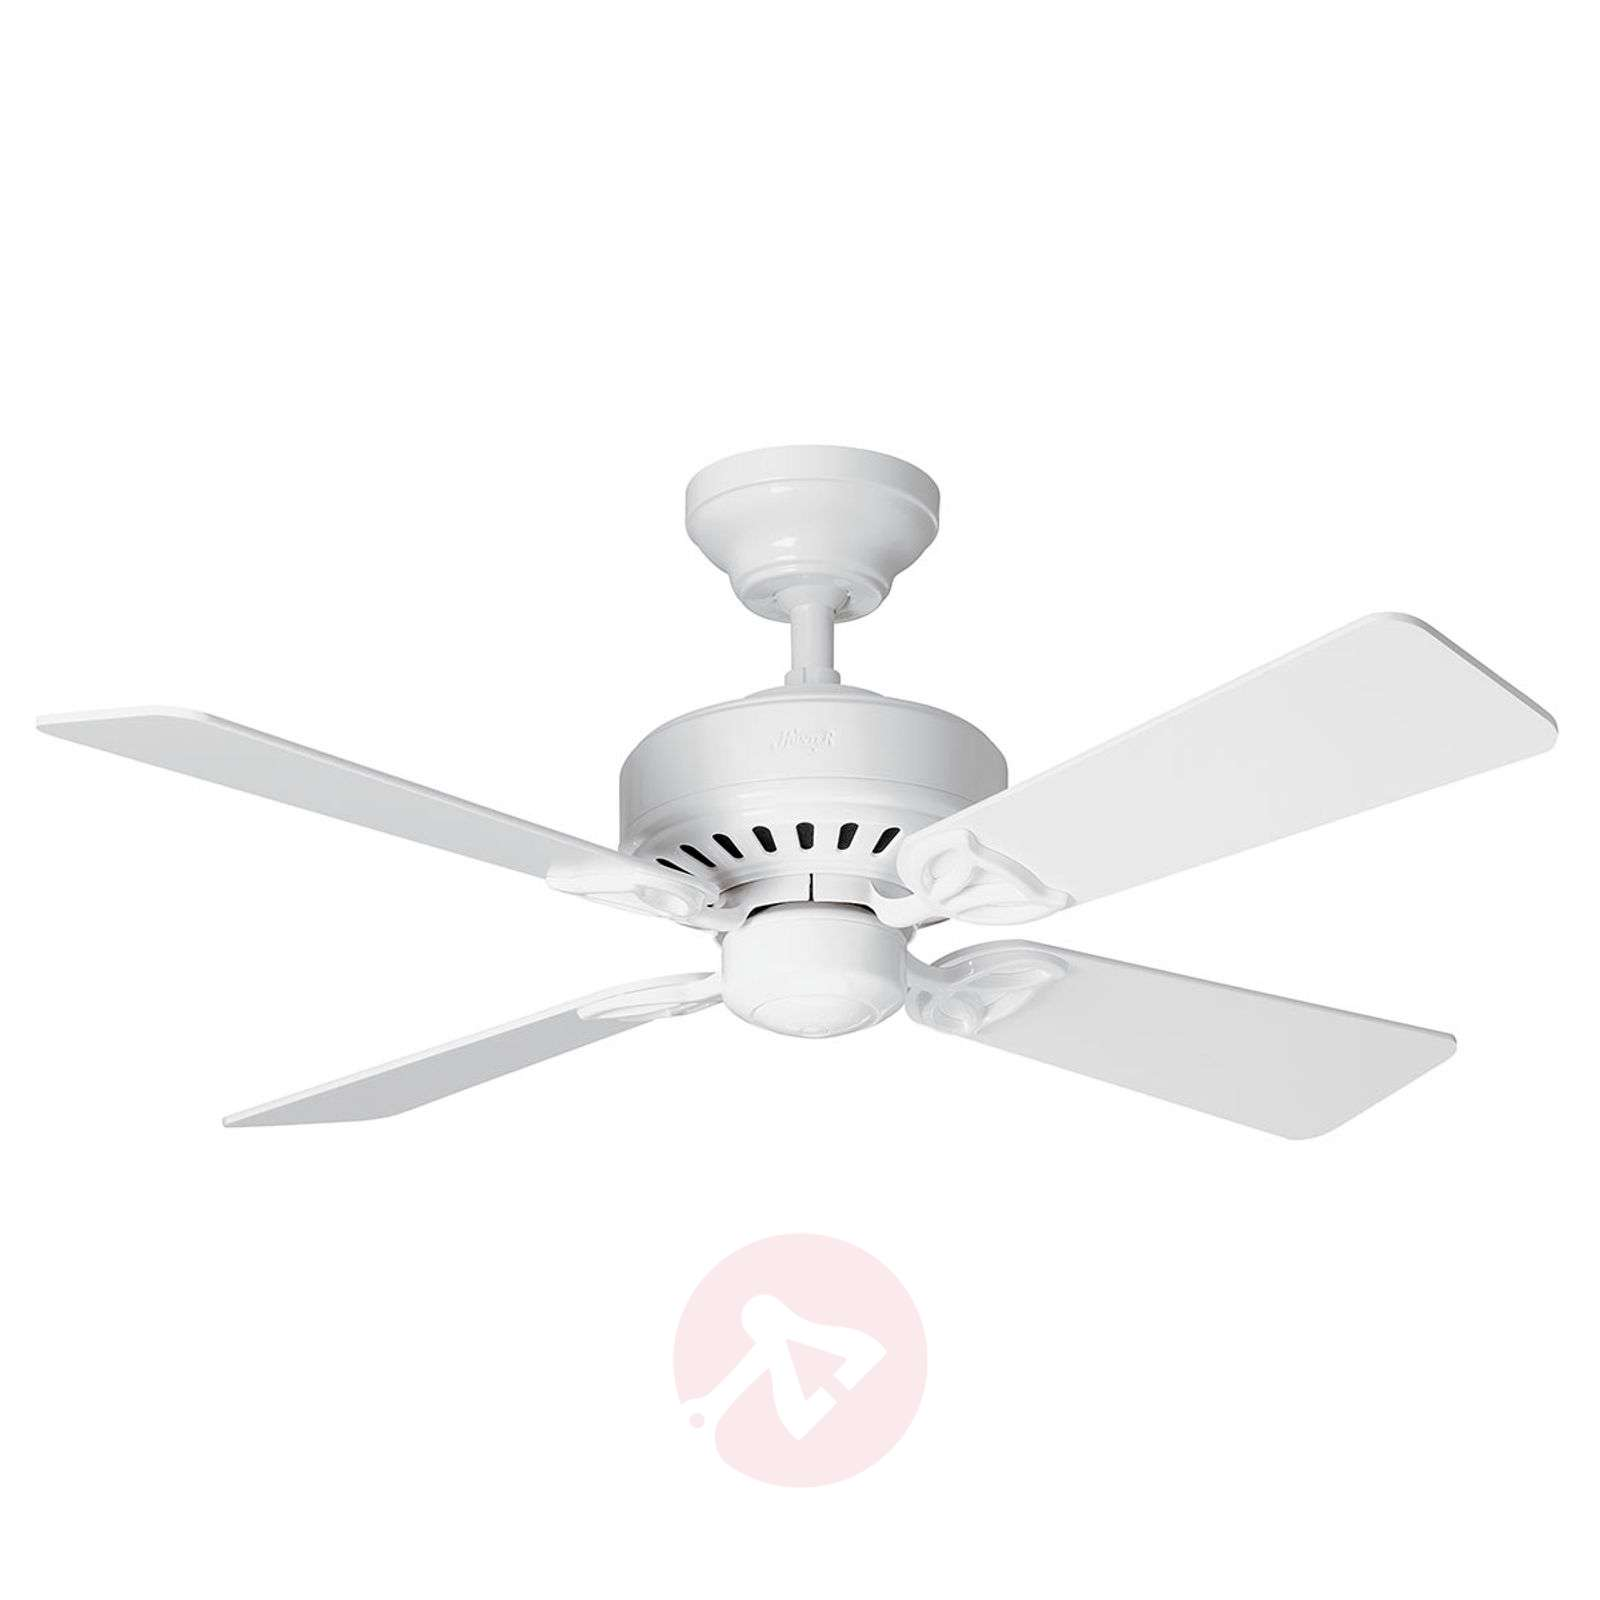 Hunter Bayport ceiling fan with reversible blades-4545003-01